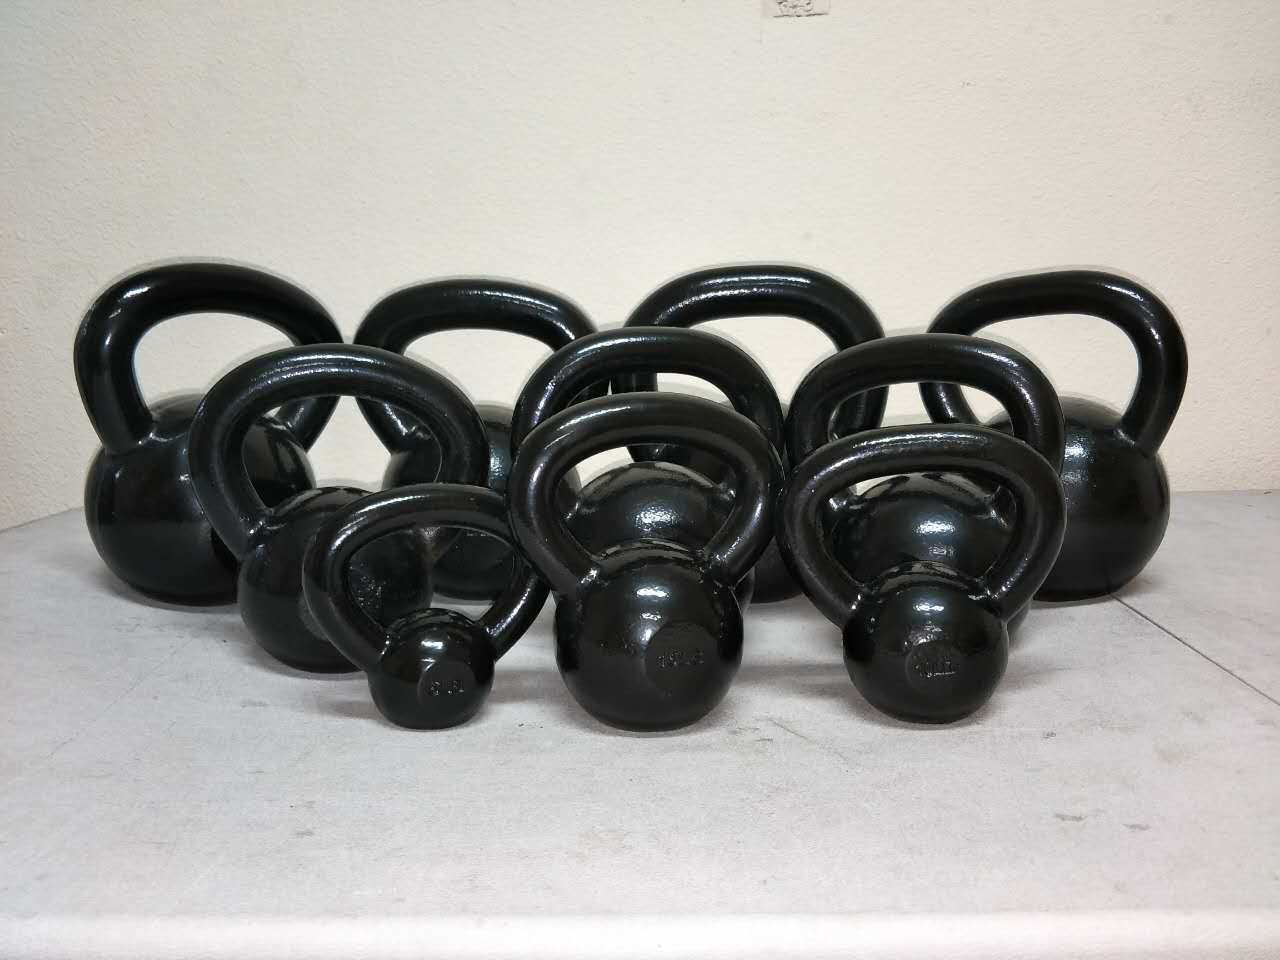 Solid Cast Iron powder coated Kettlebell Workout 5 10 15 20 25 30 35 40 45 50 lb